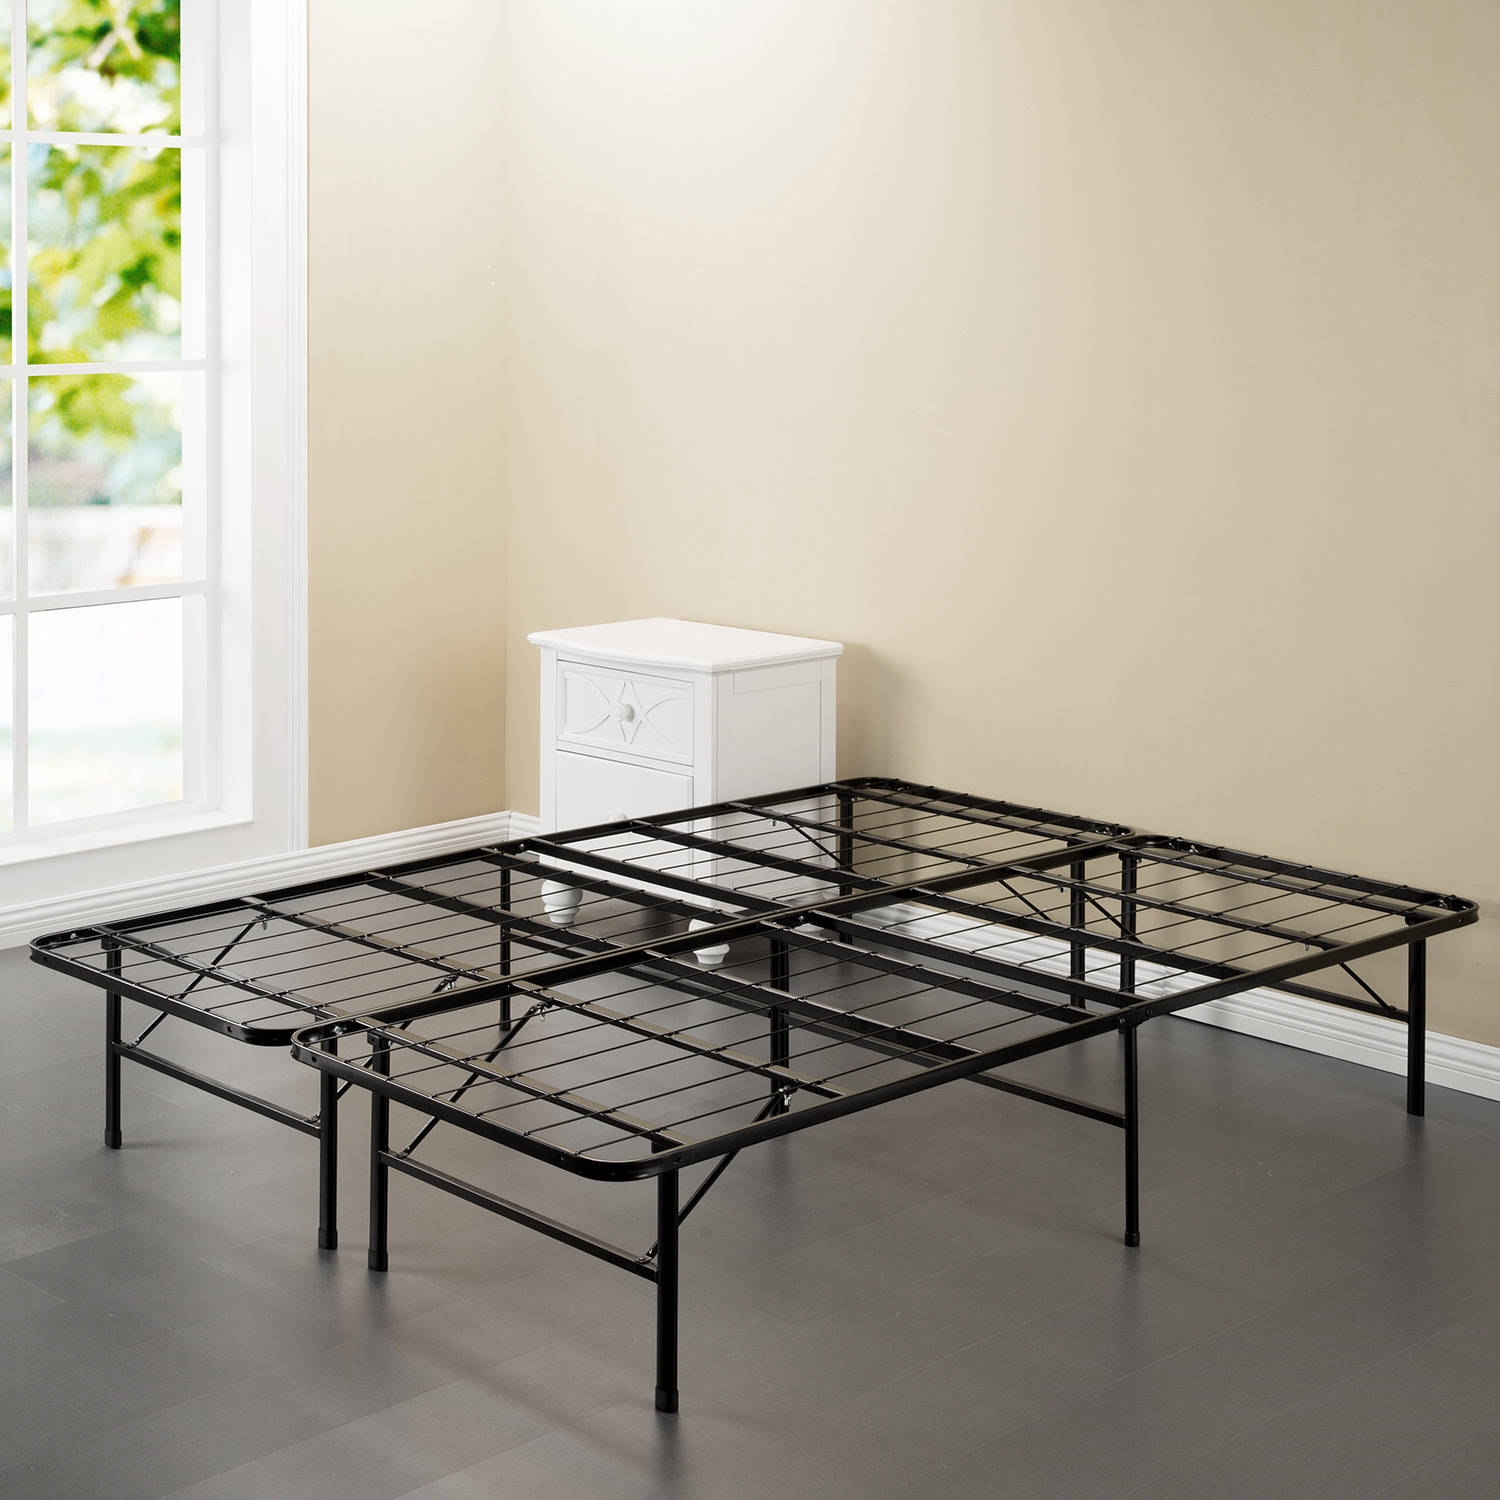 Bed Frame Purchase